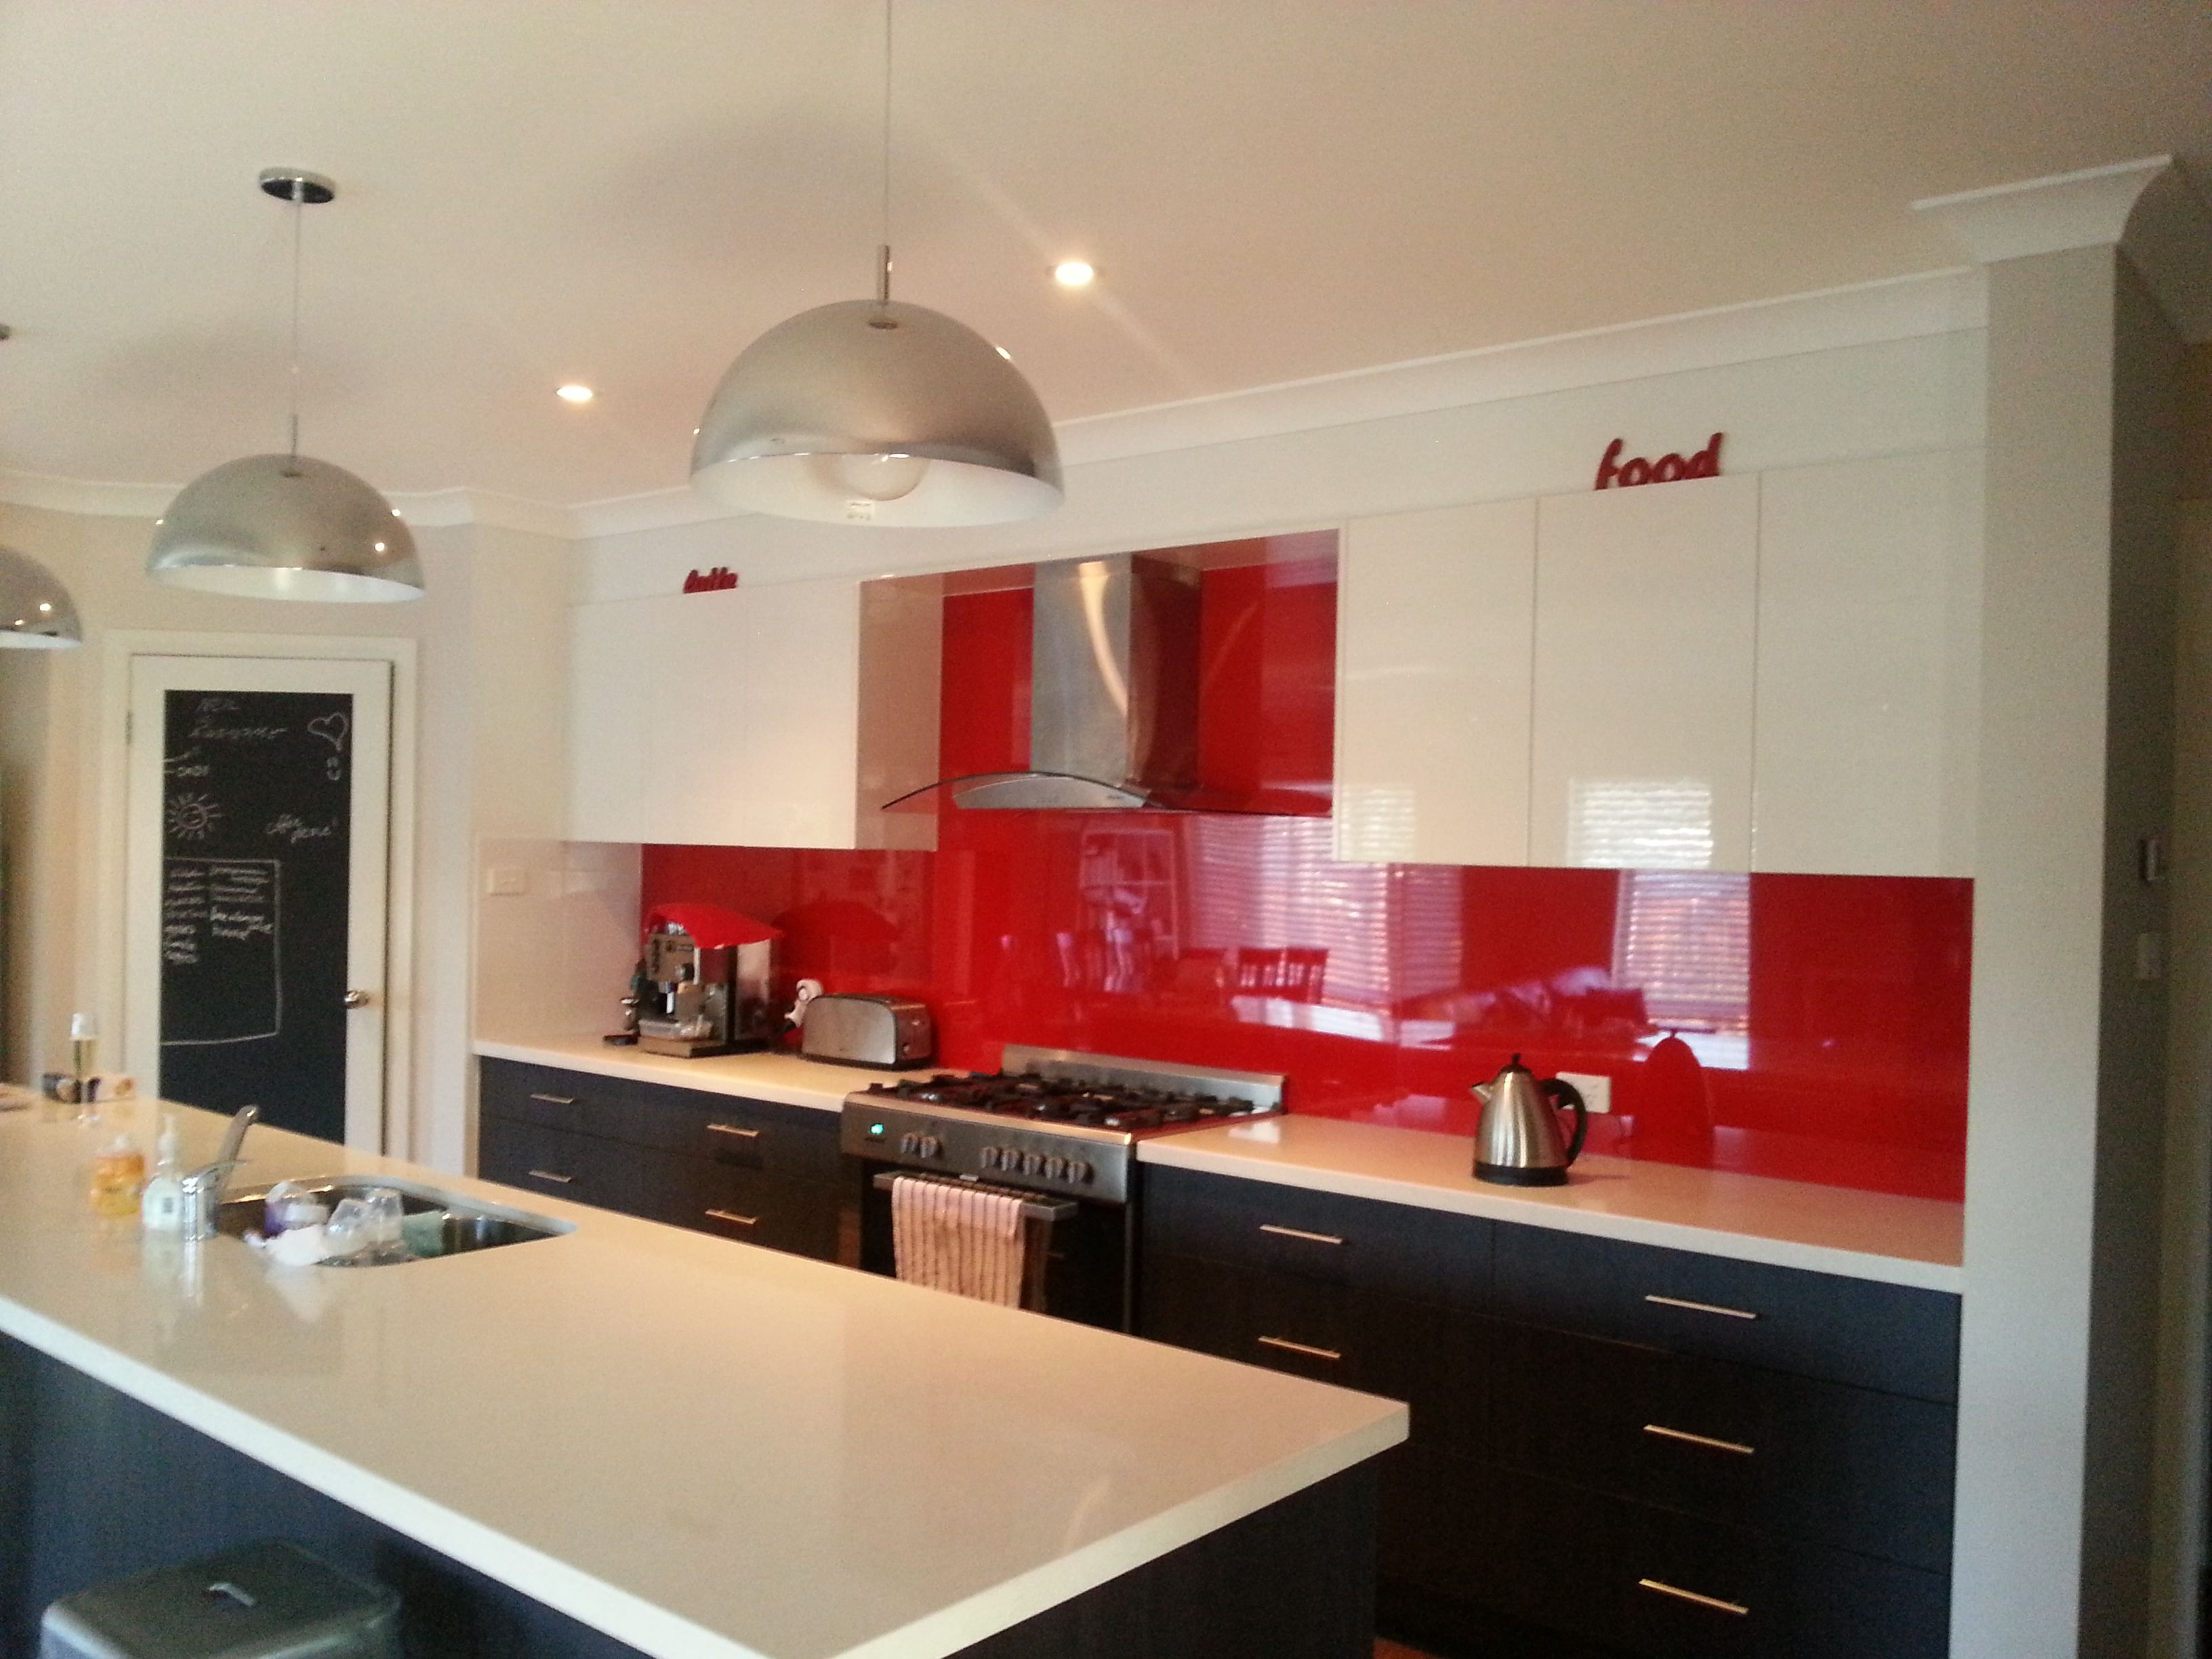 Red kitchen splashback dark cupboards under light - Black red and white kitchen designs ...